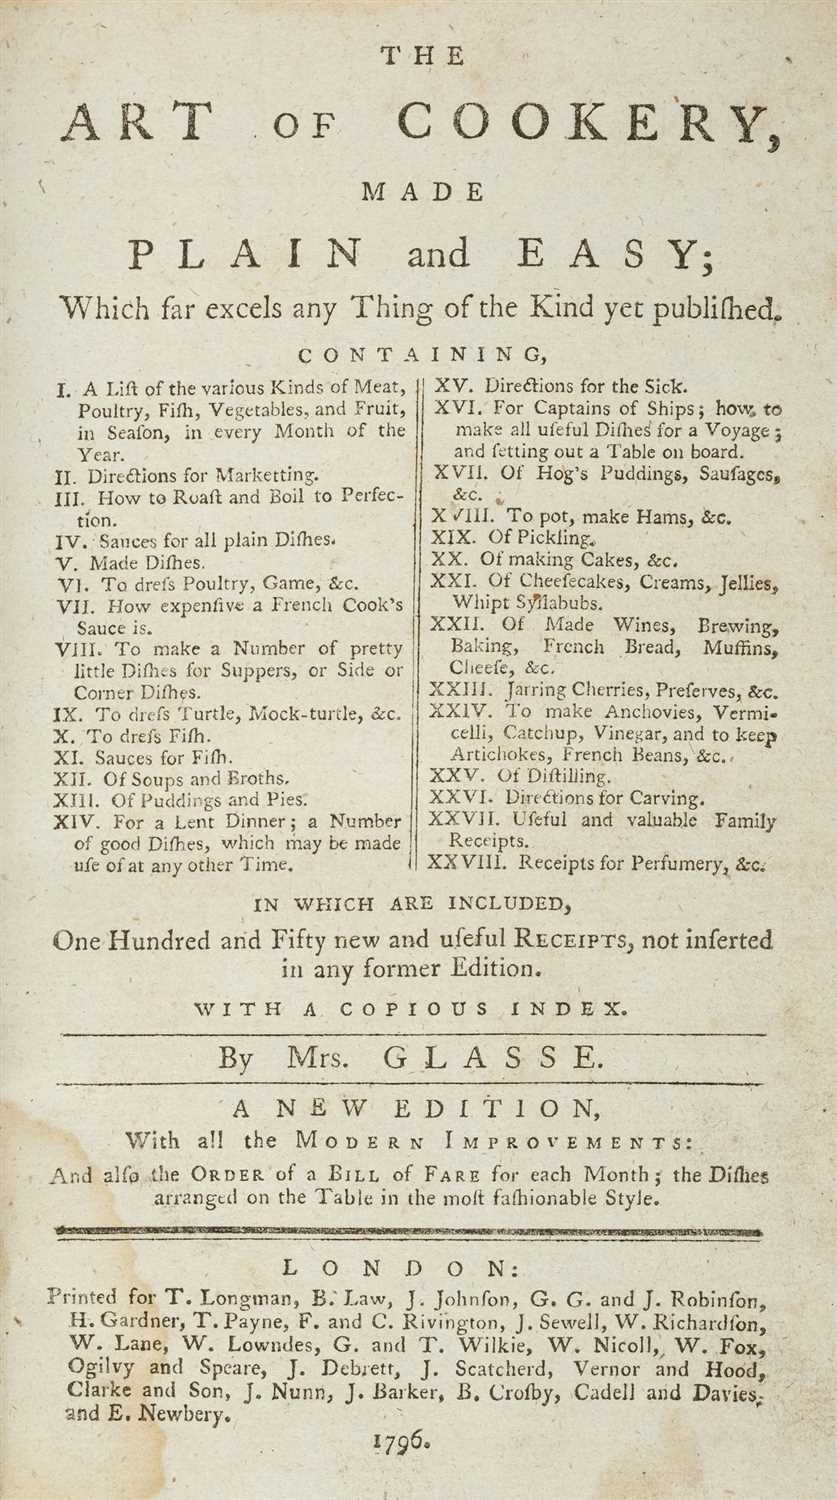 Lot 321-Glasse (Hannah). The Art of Cookery, 1796